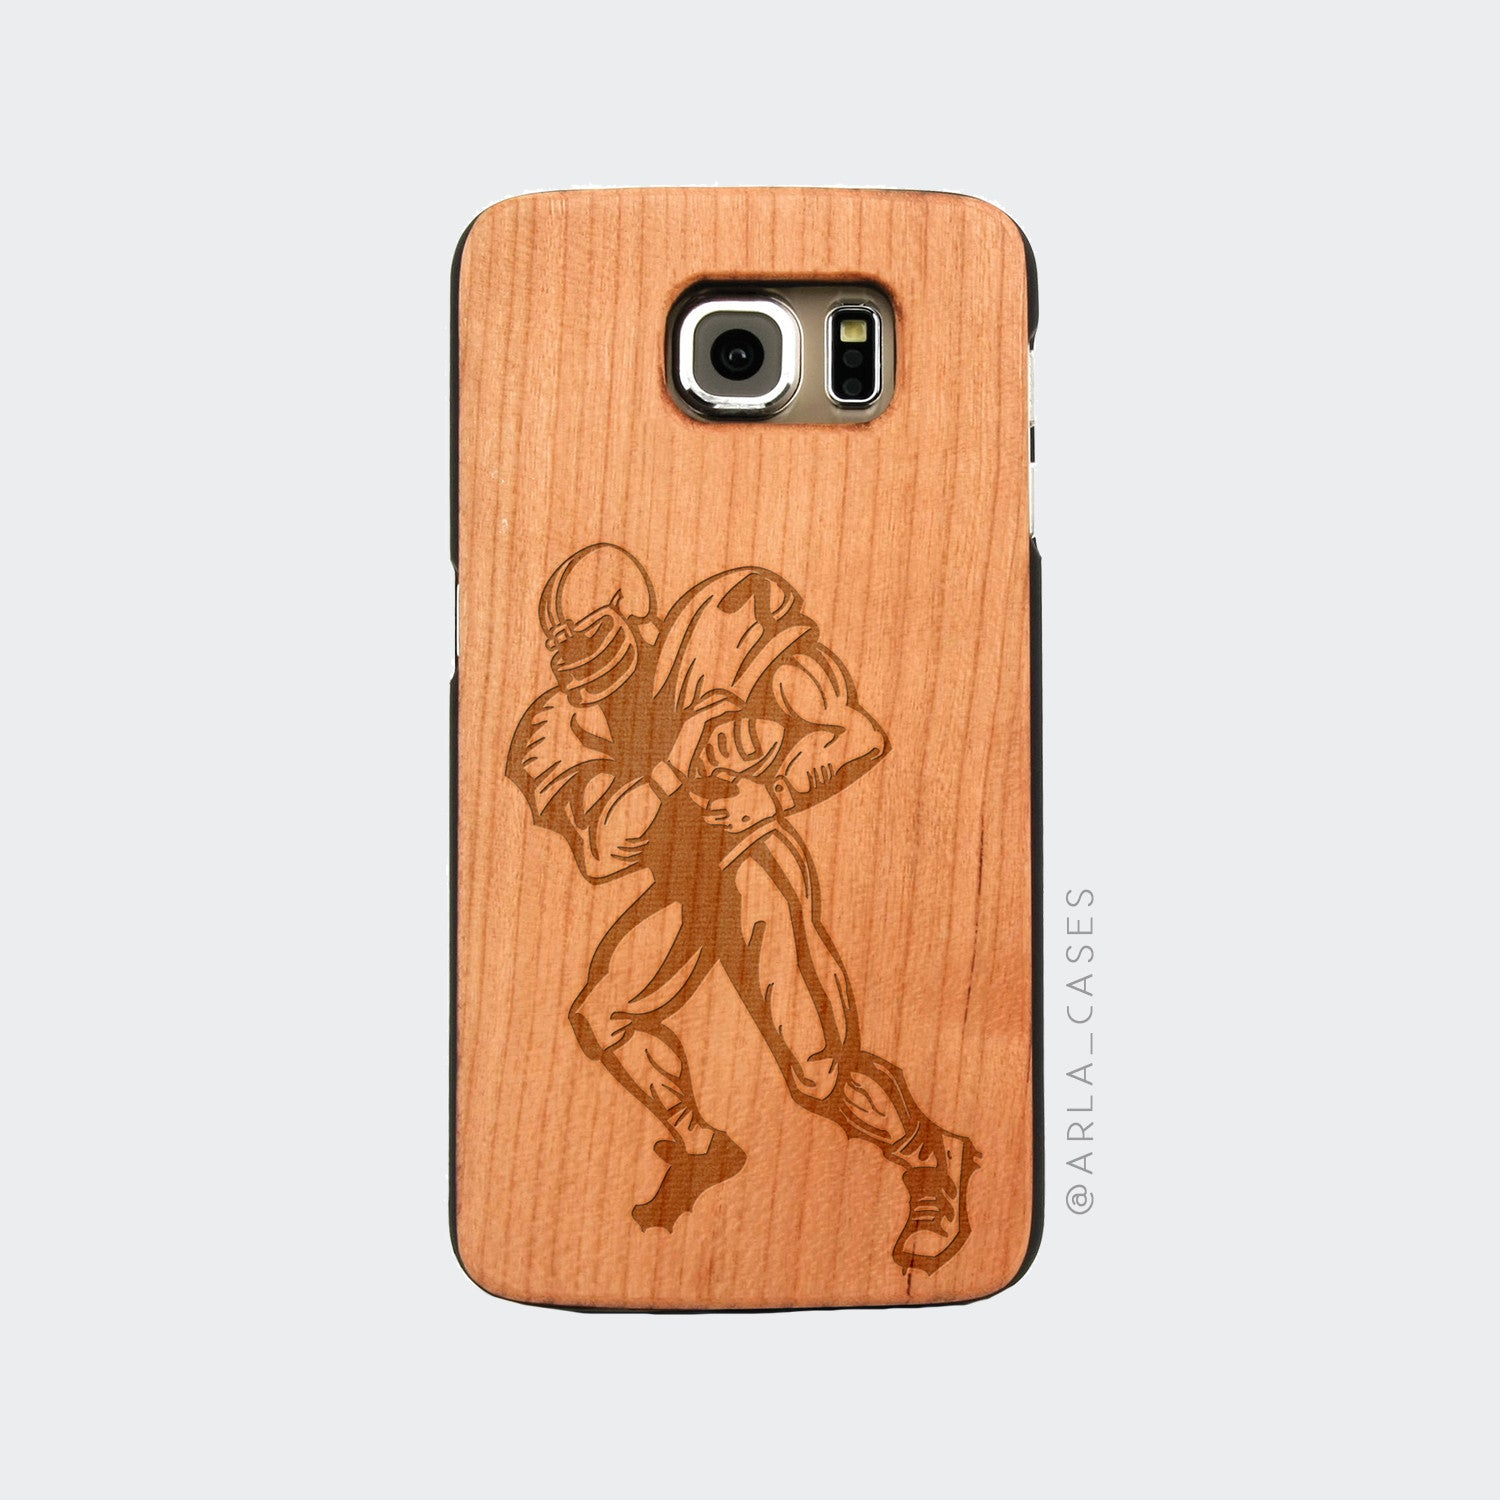 Football Player Engraved on Wood Galaxy Case